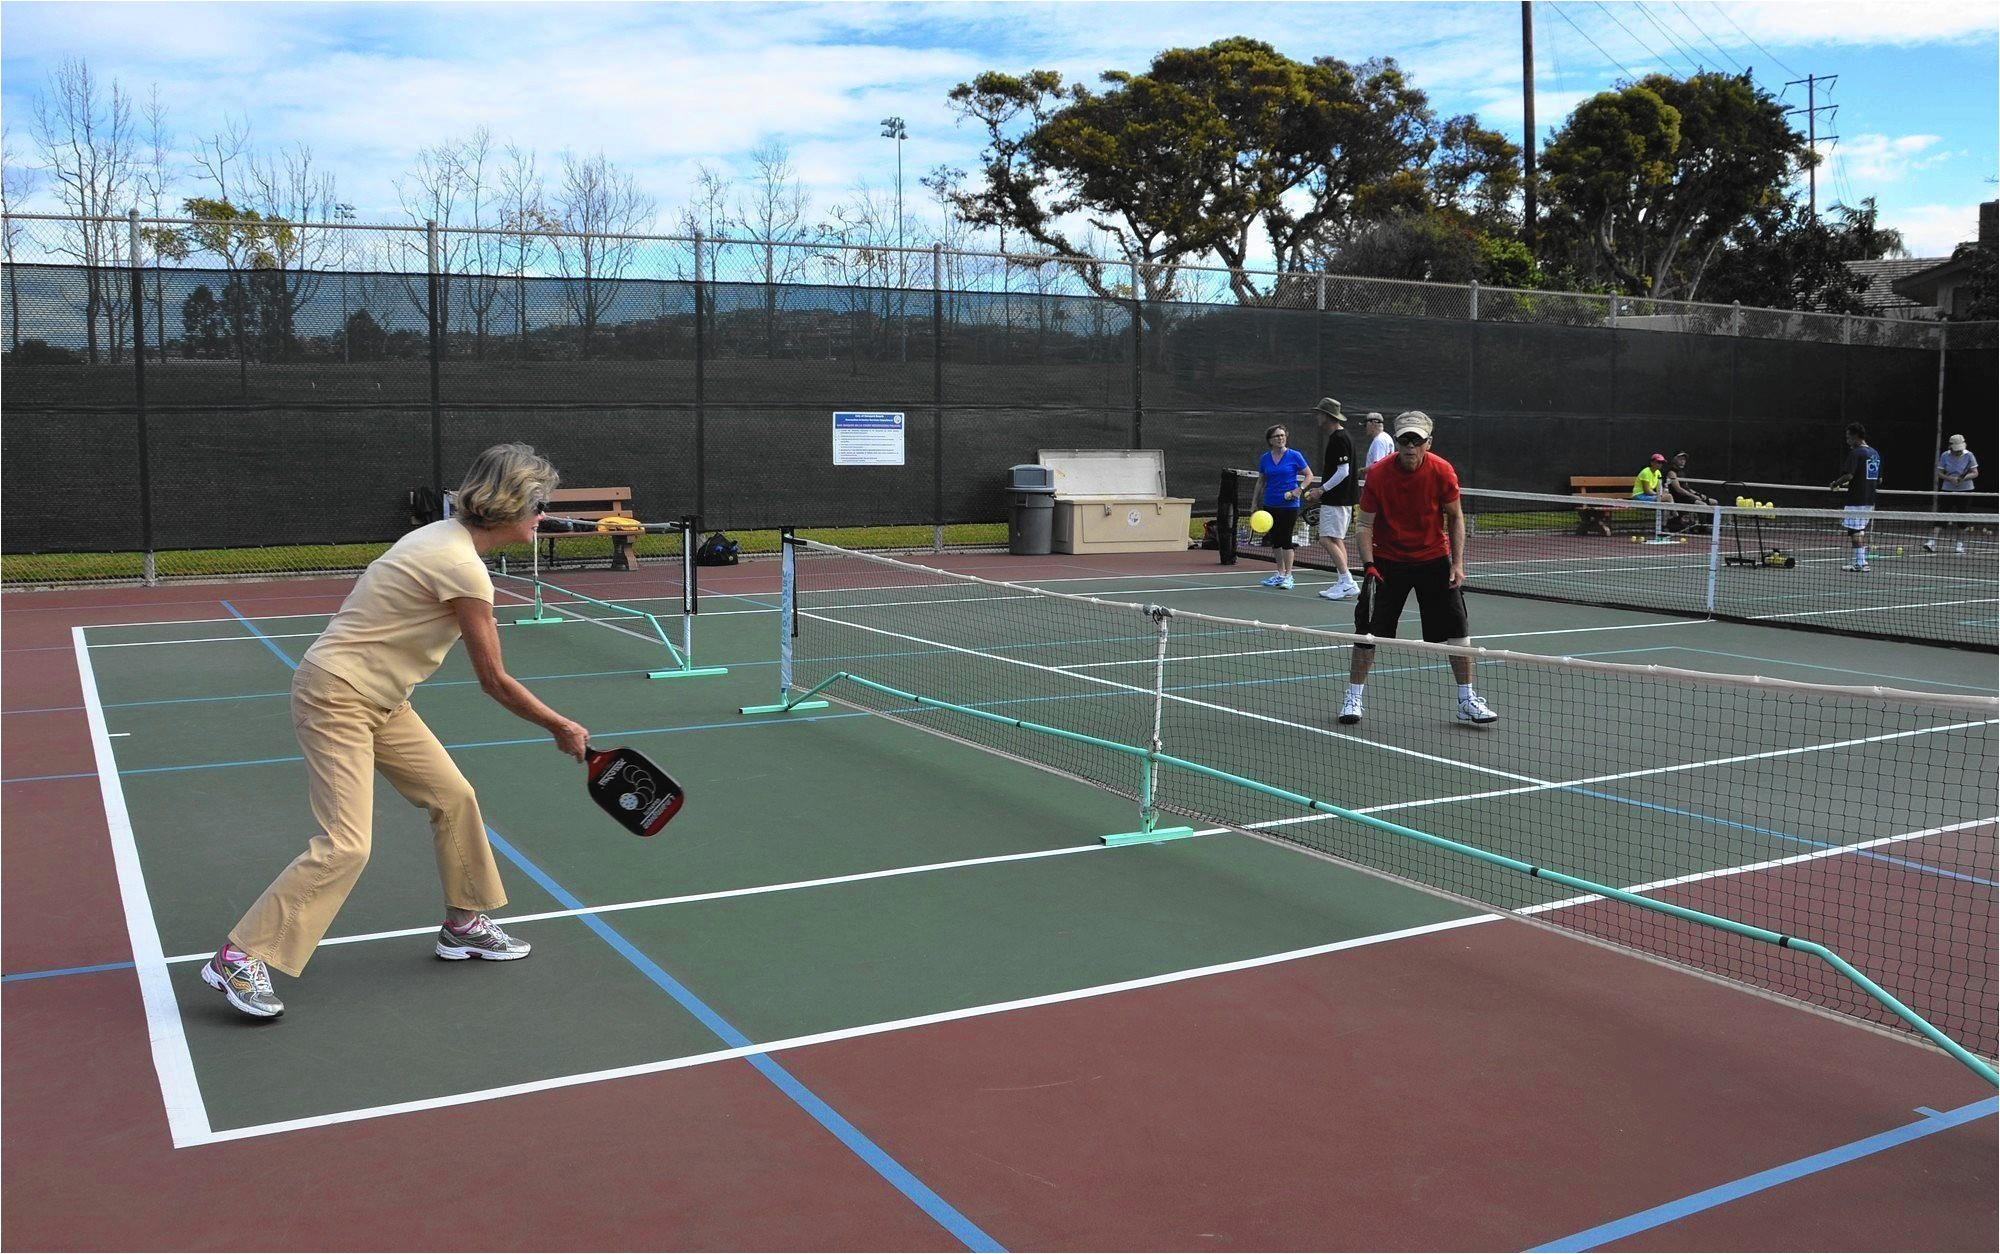 tn dpt me pickleball courts 20161222 story